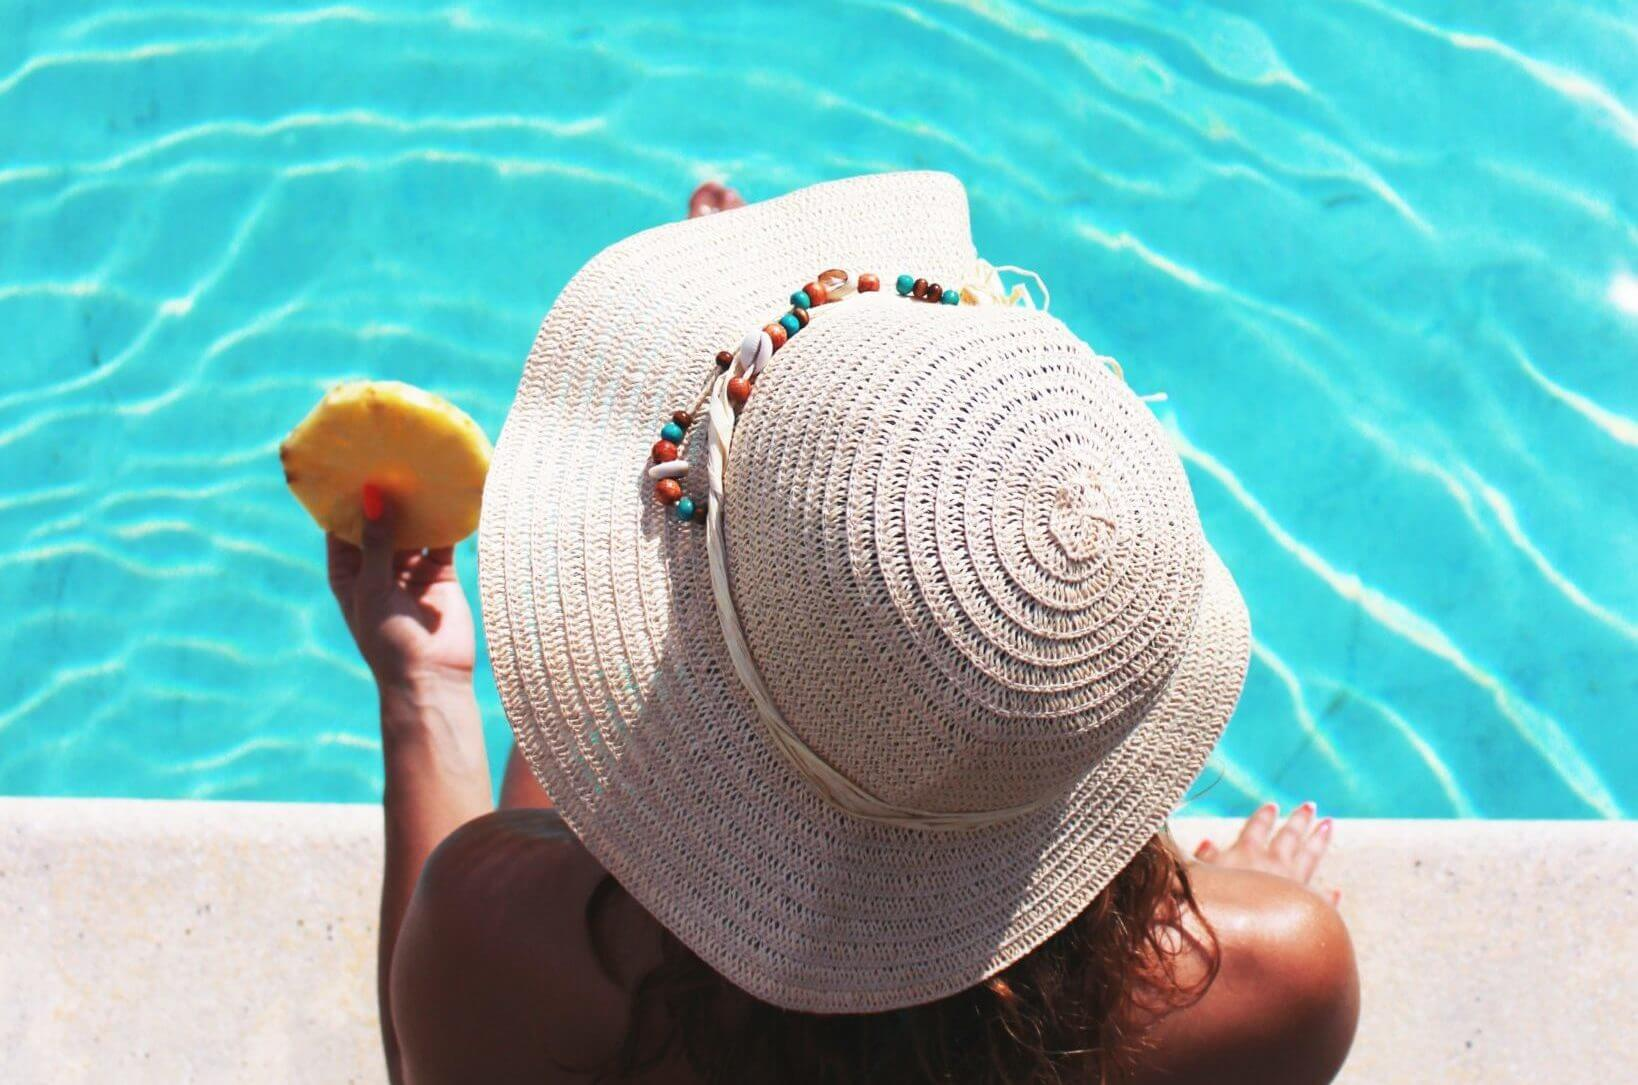 What Causes Pool Chlorine Smell & How to Get Rid of It